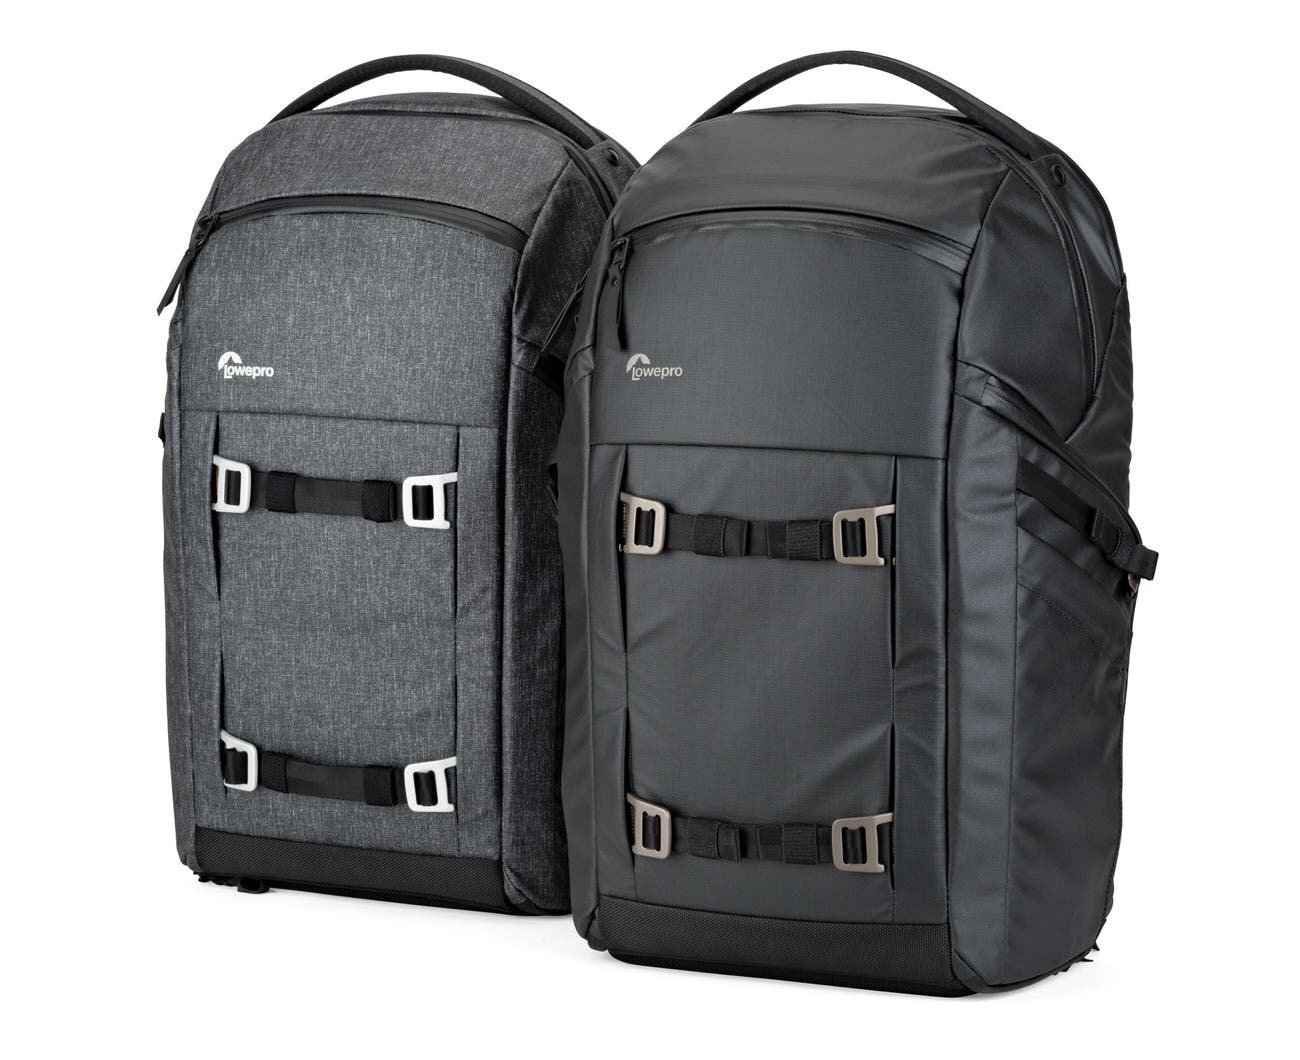 Lowepro Announces New Freeline BP 350 AW Daypack for Content Creators